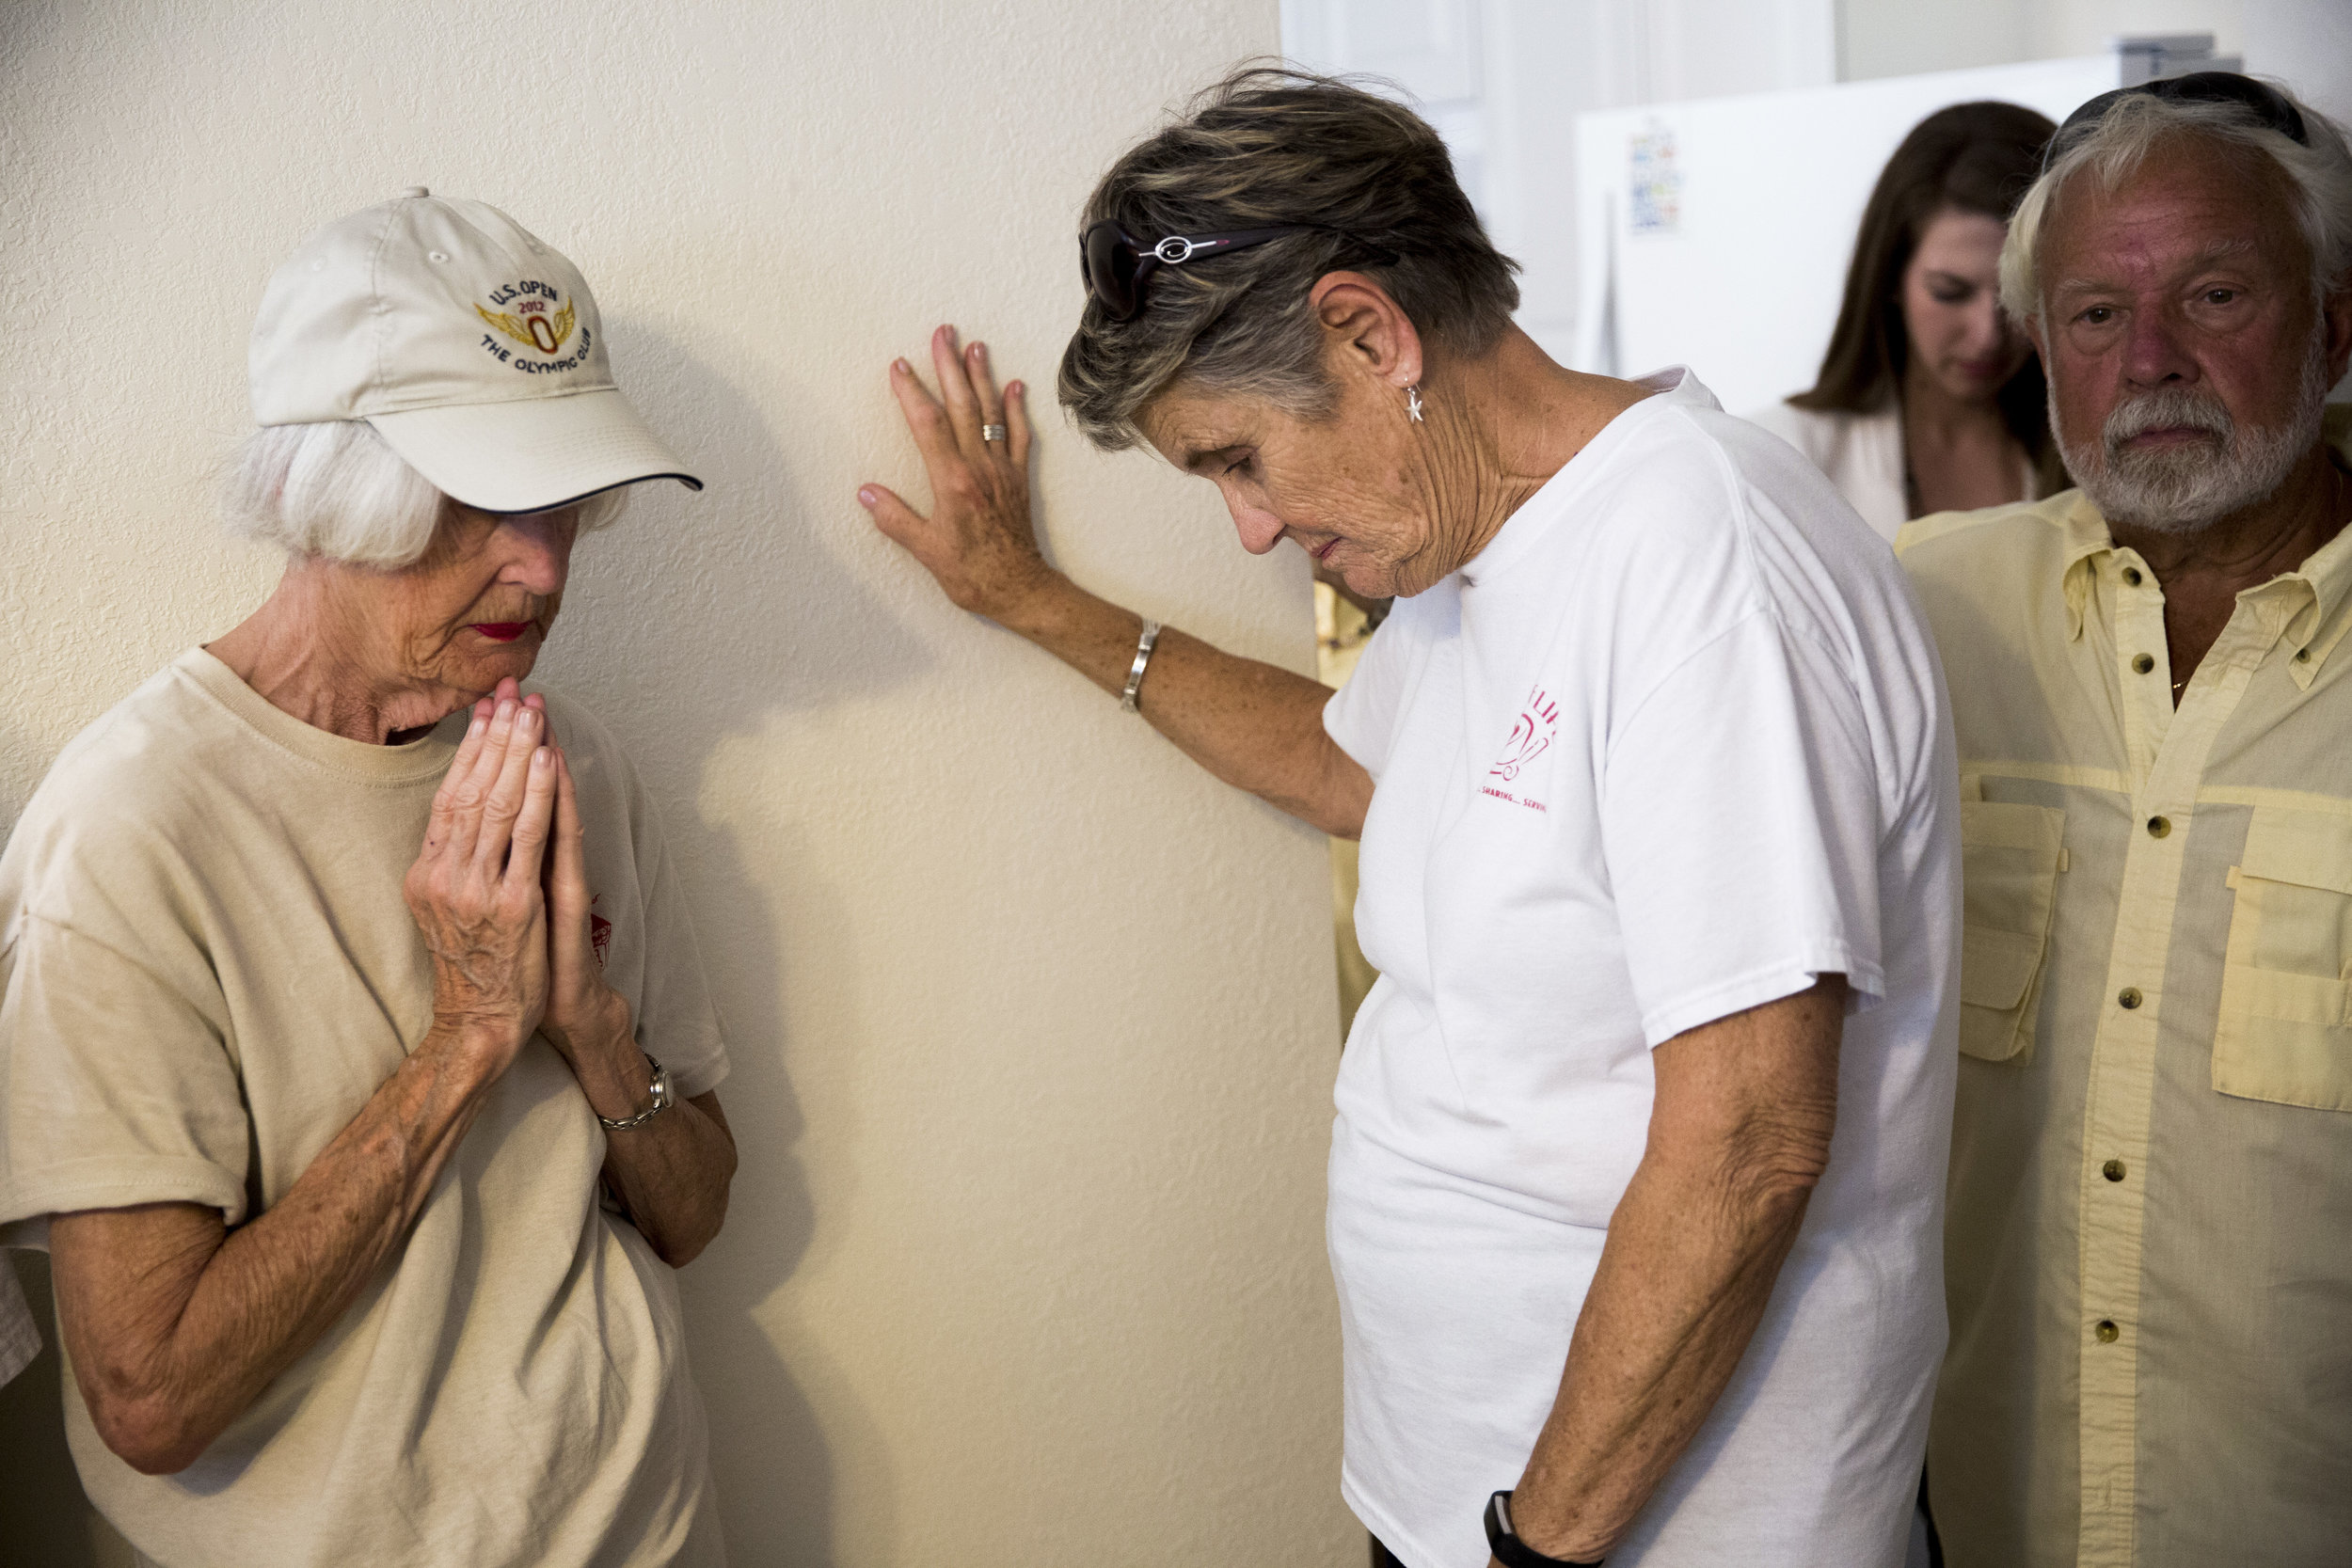 Habitat for Humanity volunteers, in a moment of prayer, place their hands on one of the recently donated homes during the dedication process Friday, April 13, 2018 in Bonita Springs, Fla.